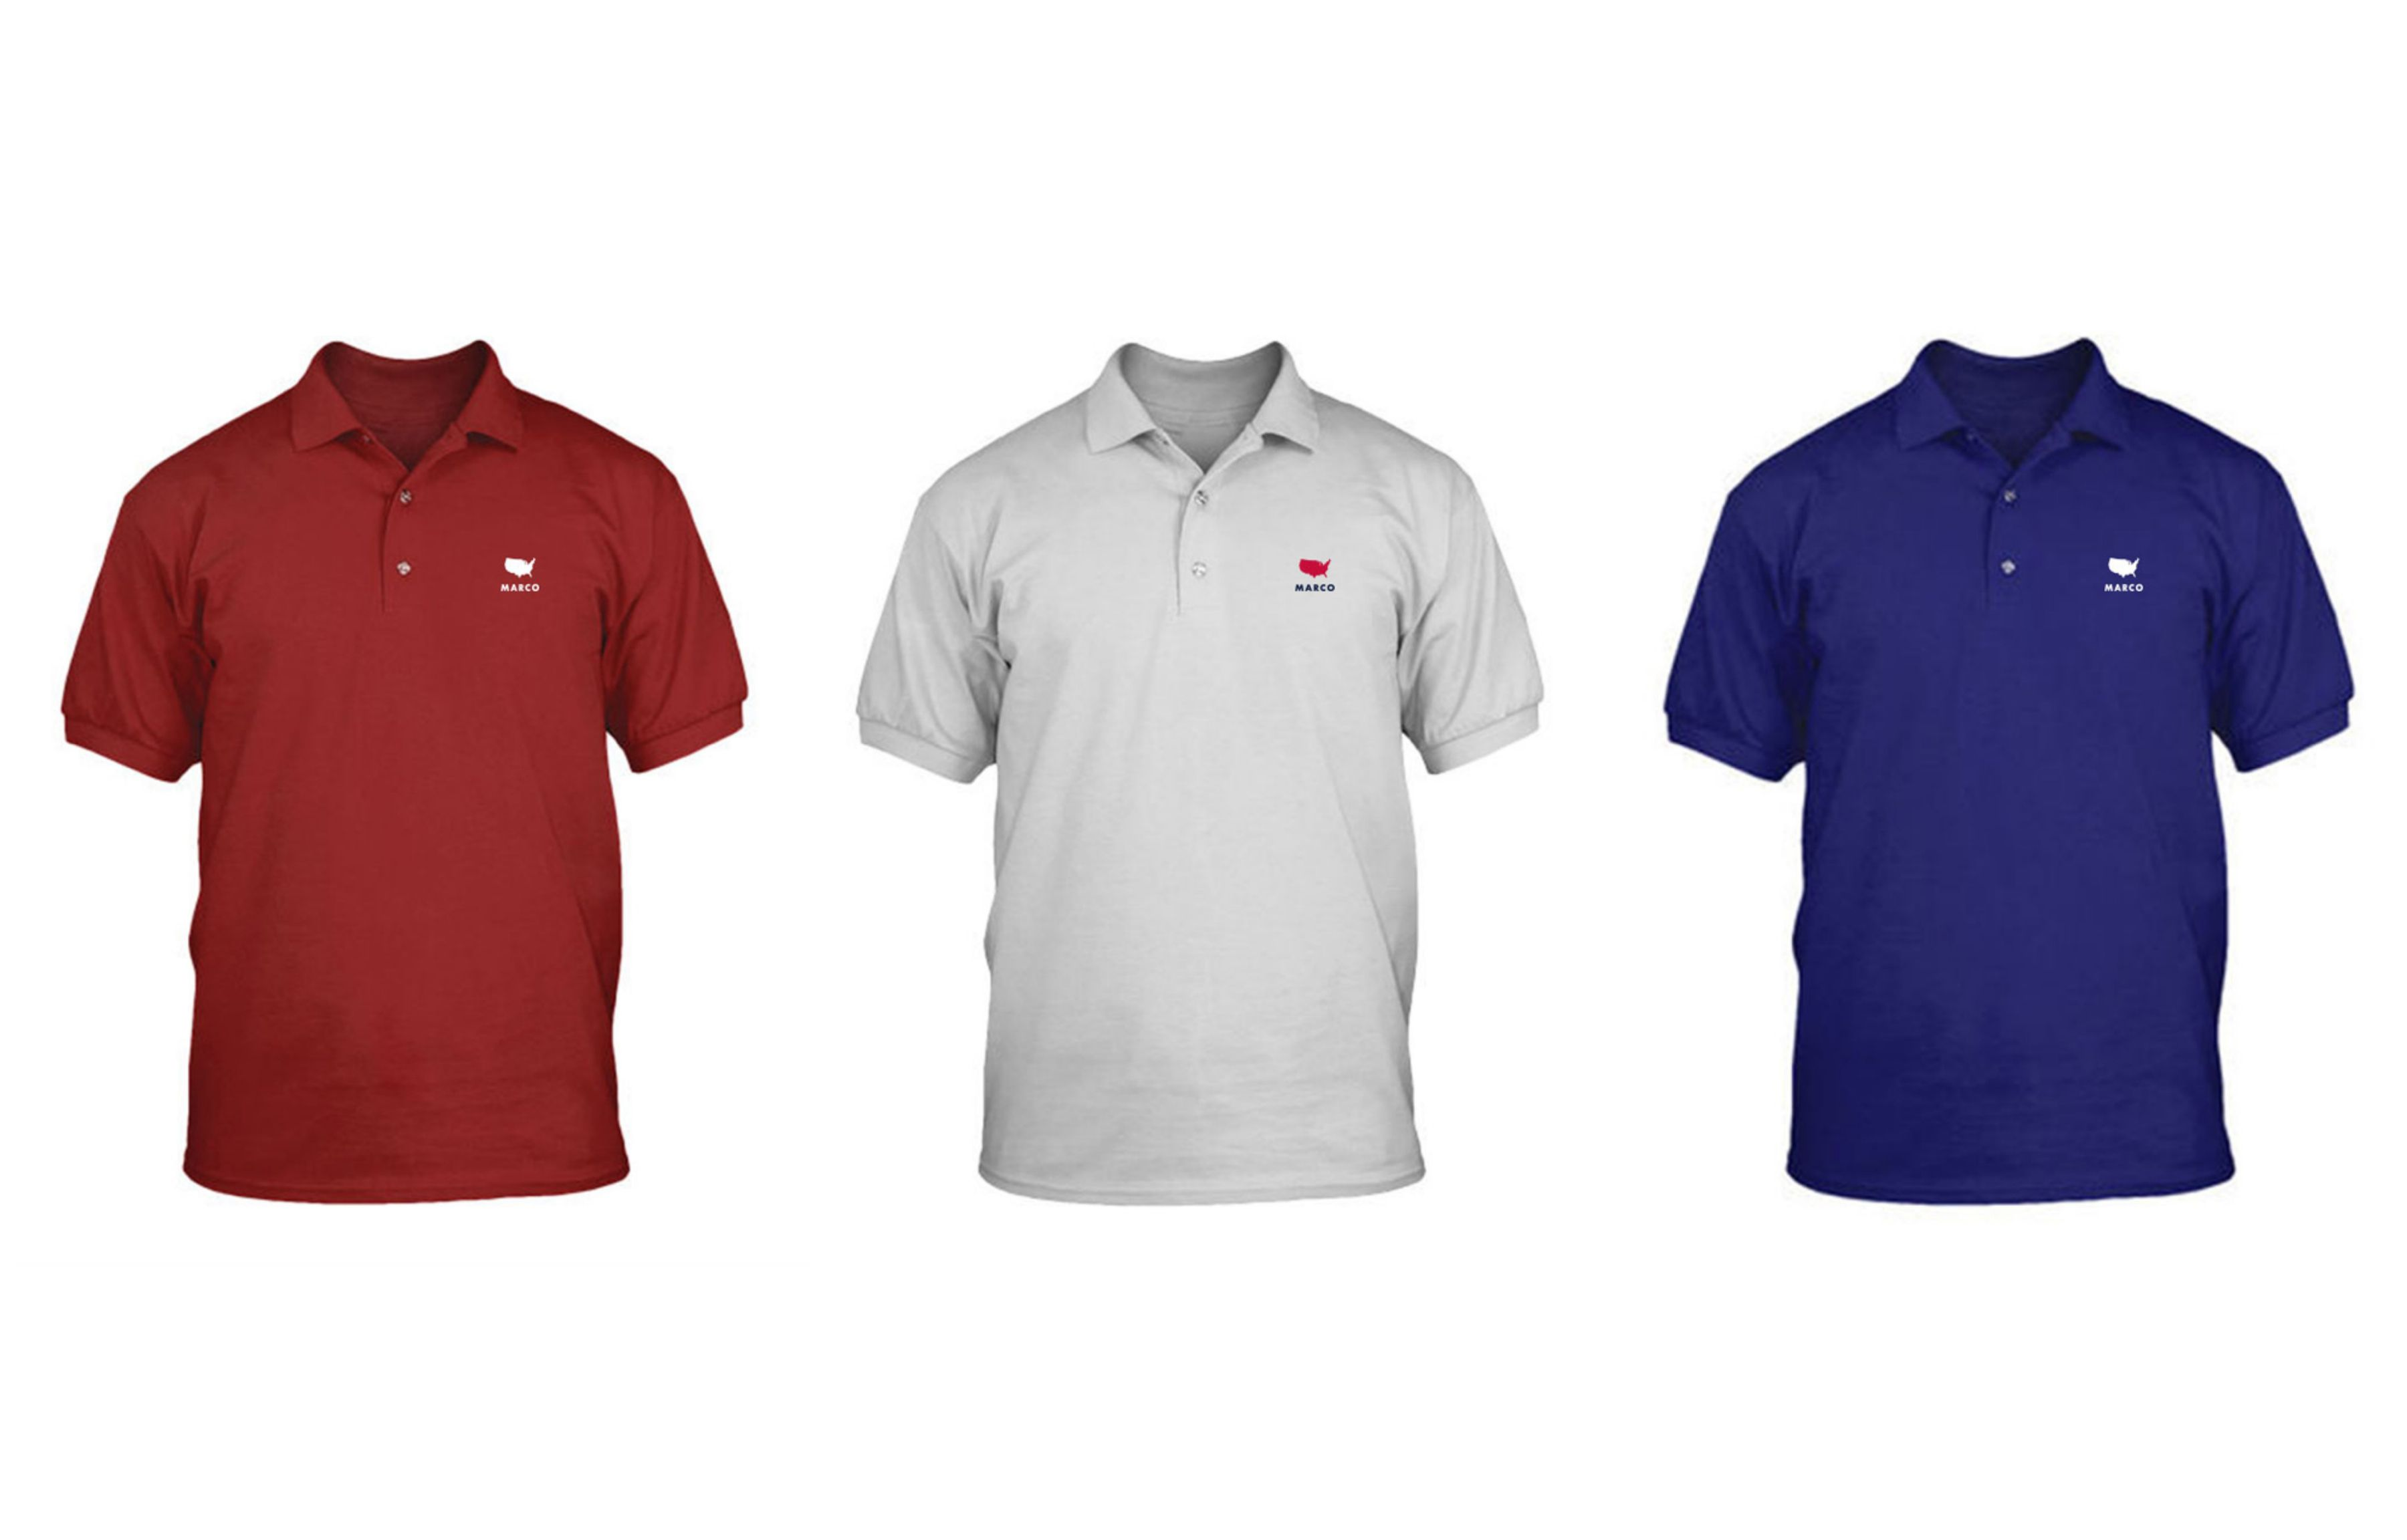 Marco Rubio Is Selling \'Marco Polo\' Shirts